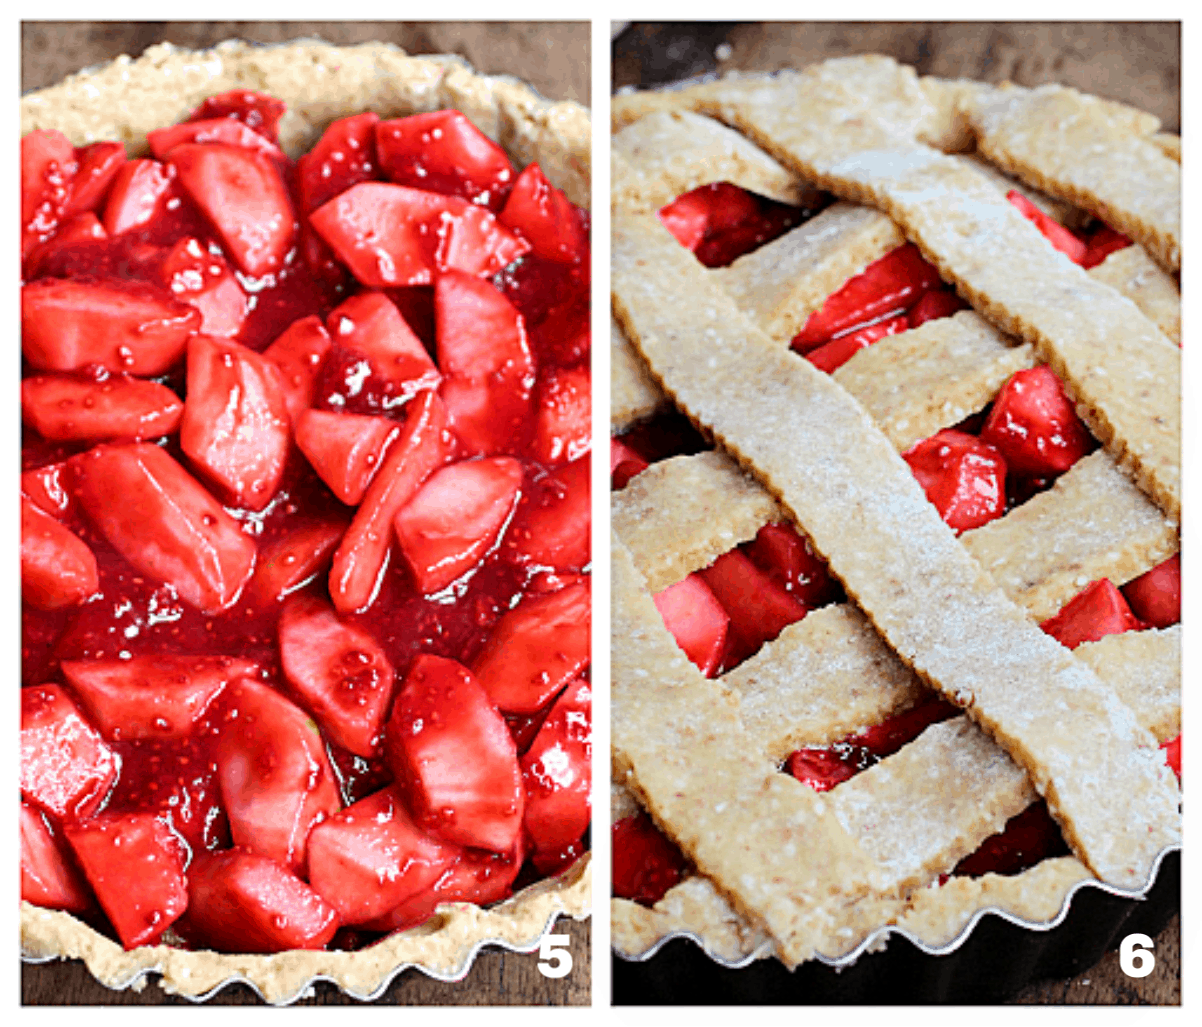 Image collage of raw pie dough with red filling: lattice top over filling